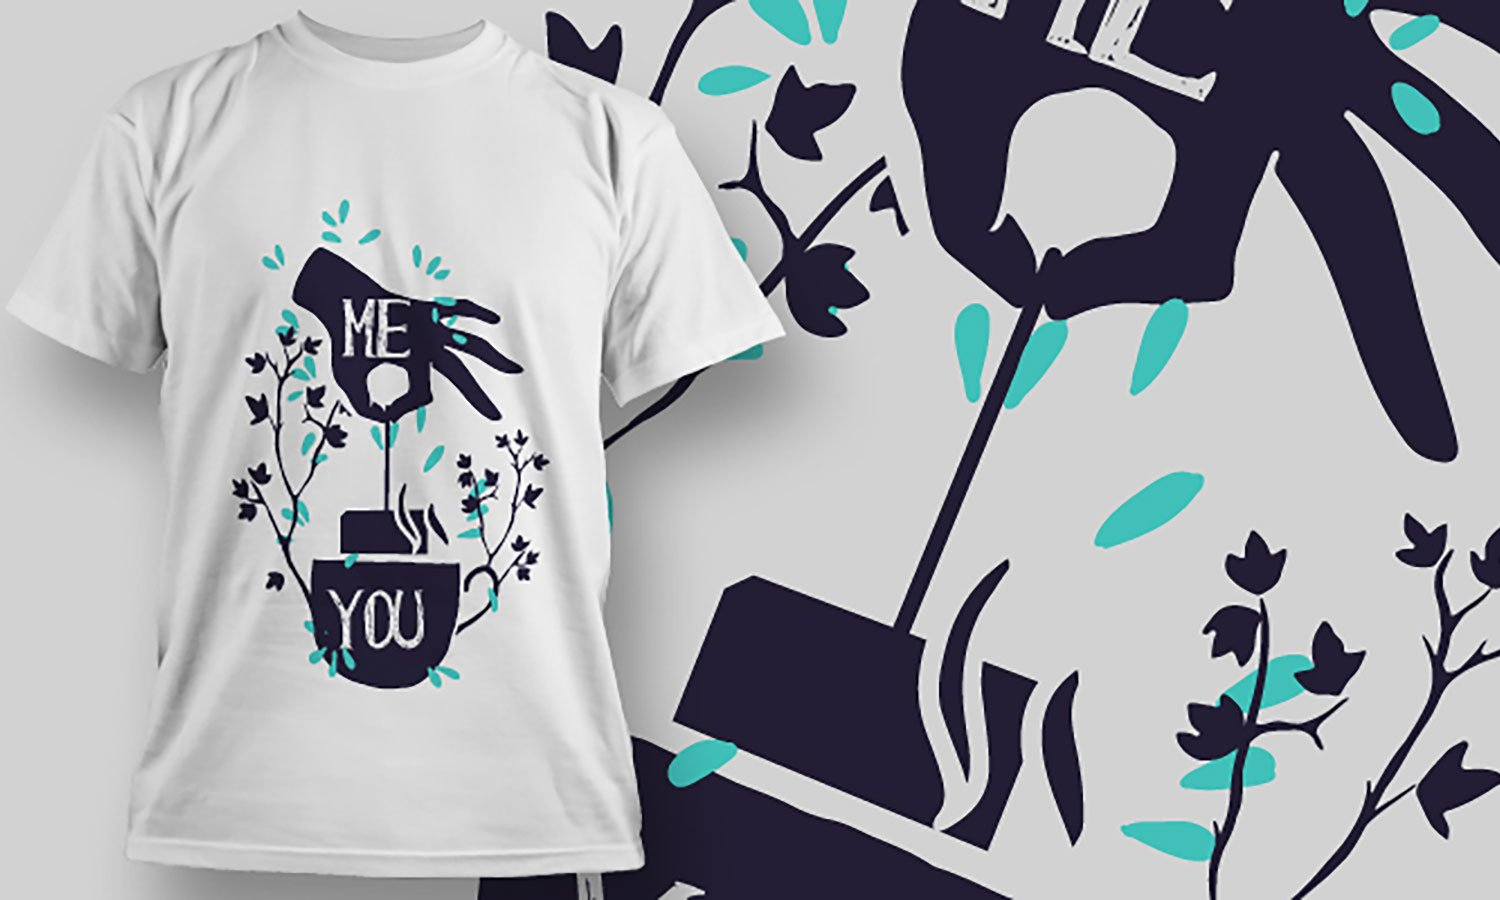 Me and You - Printed T-Shirt for Men, Women and Kids - TS277